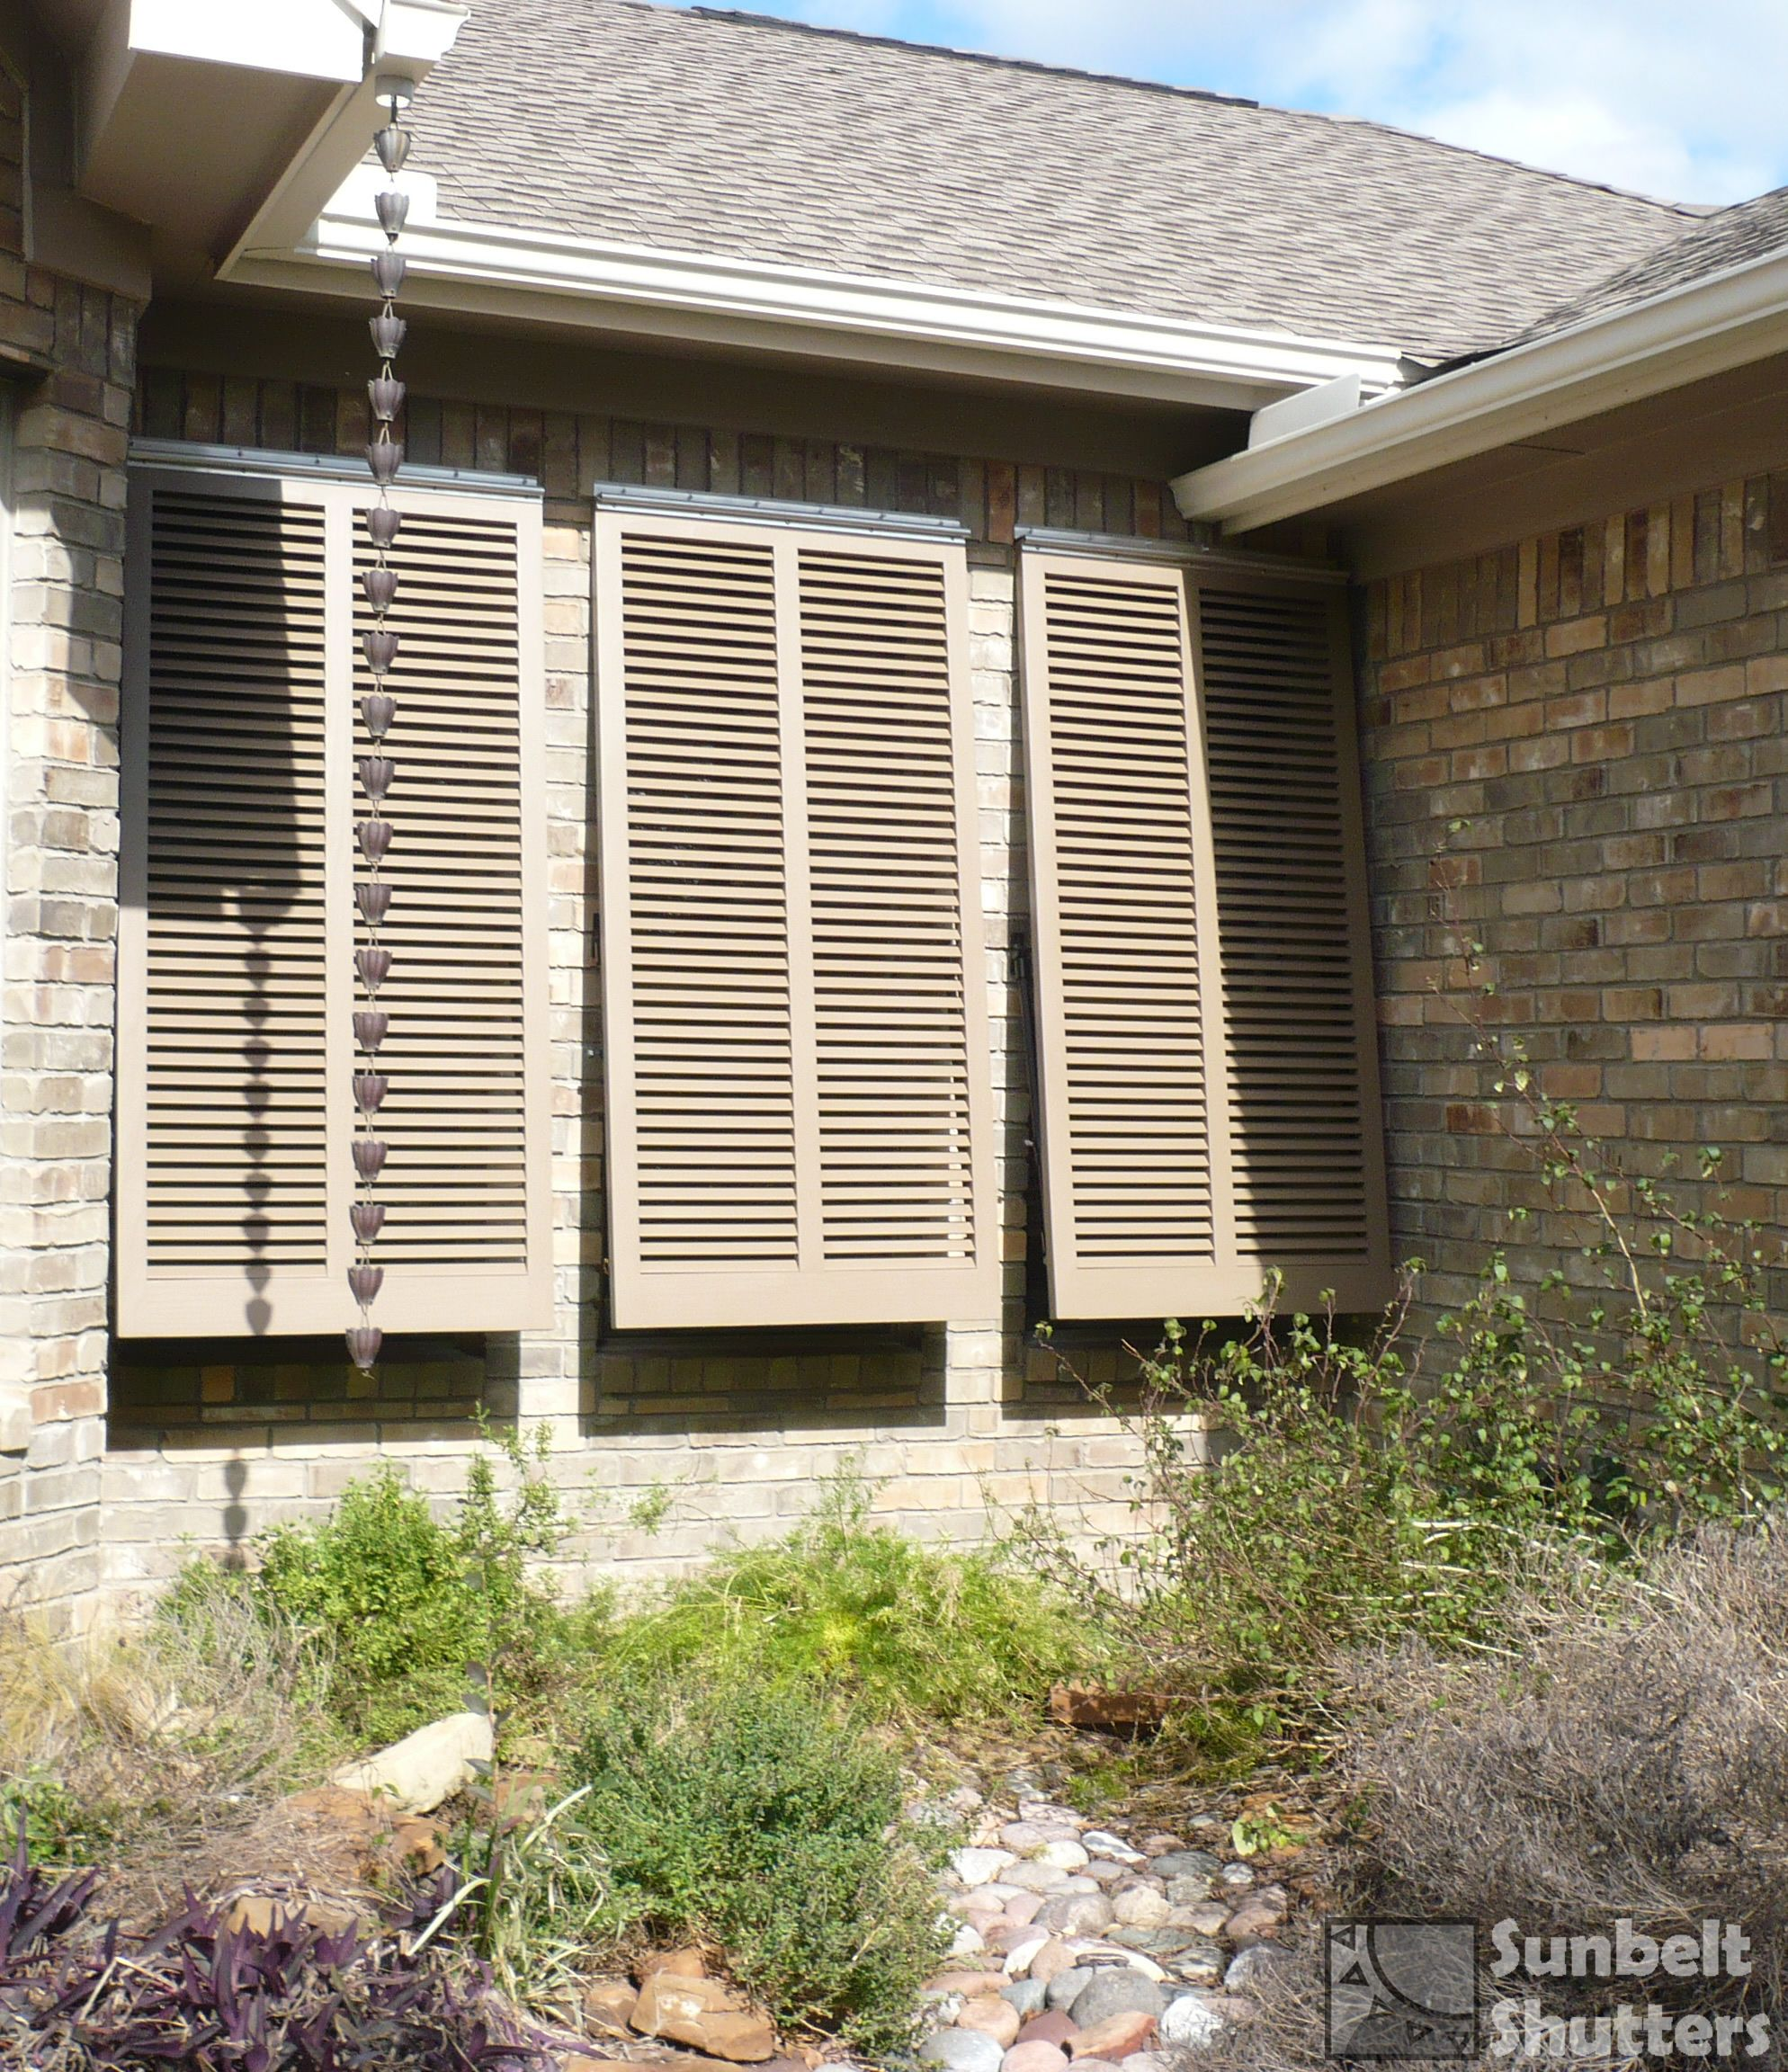 cedar bahamas shutters with open louver style (louvers at a 45